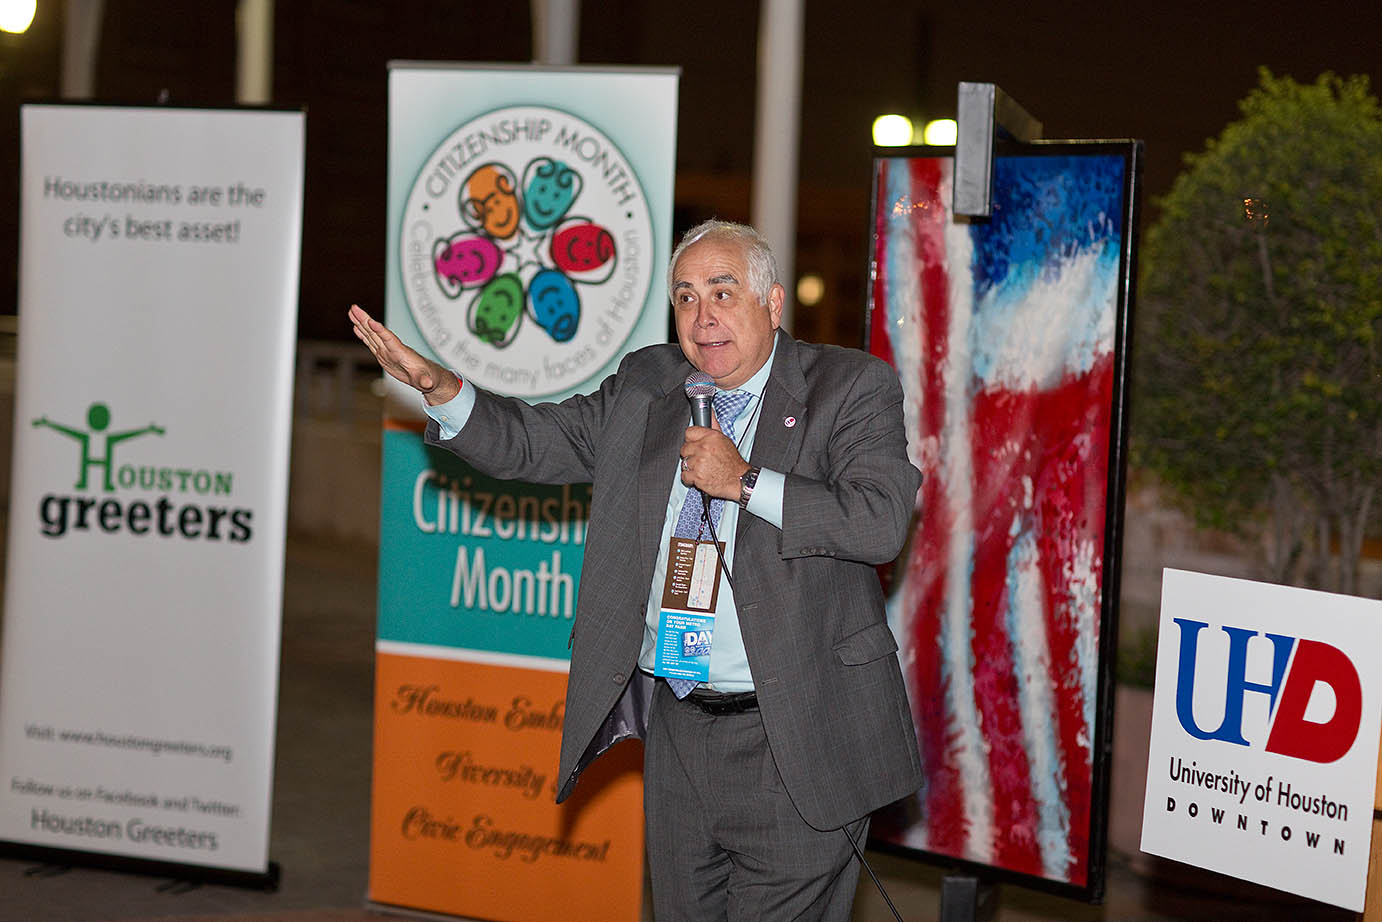 UHD hosted an opening reception with speeches by Dr. Flores and Metro for the 2nd annual Rails to Restaurants event.